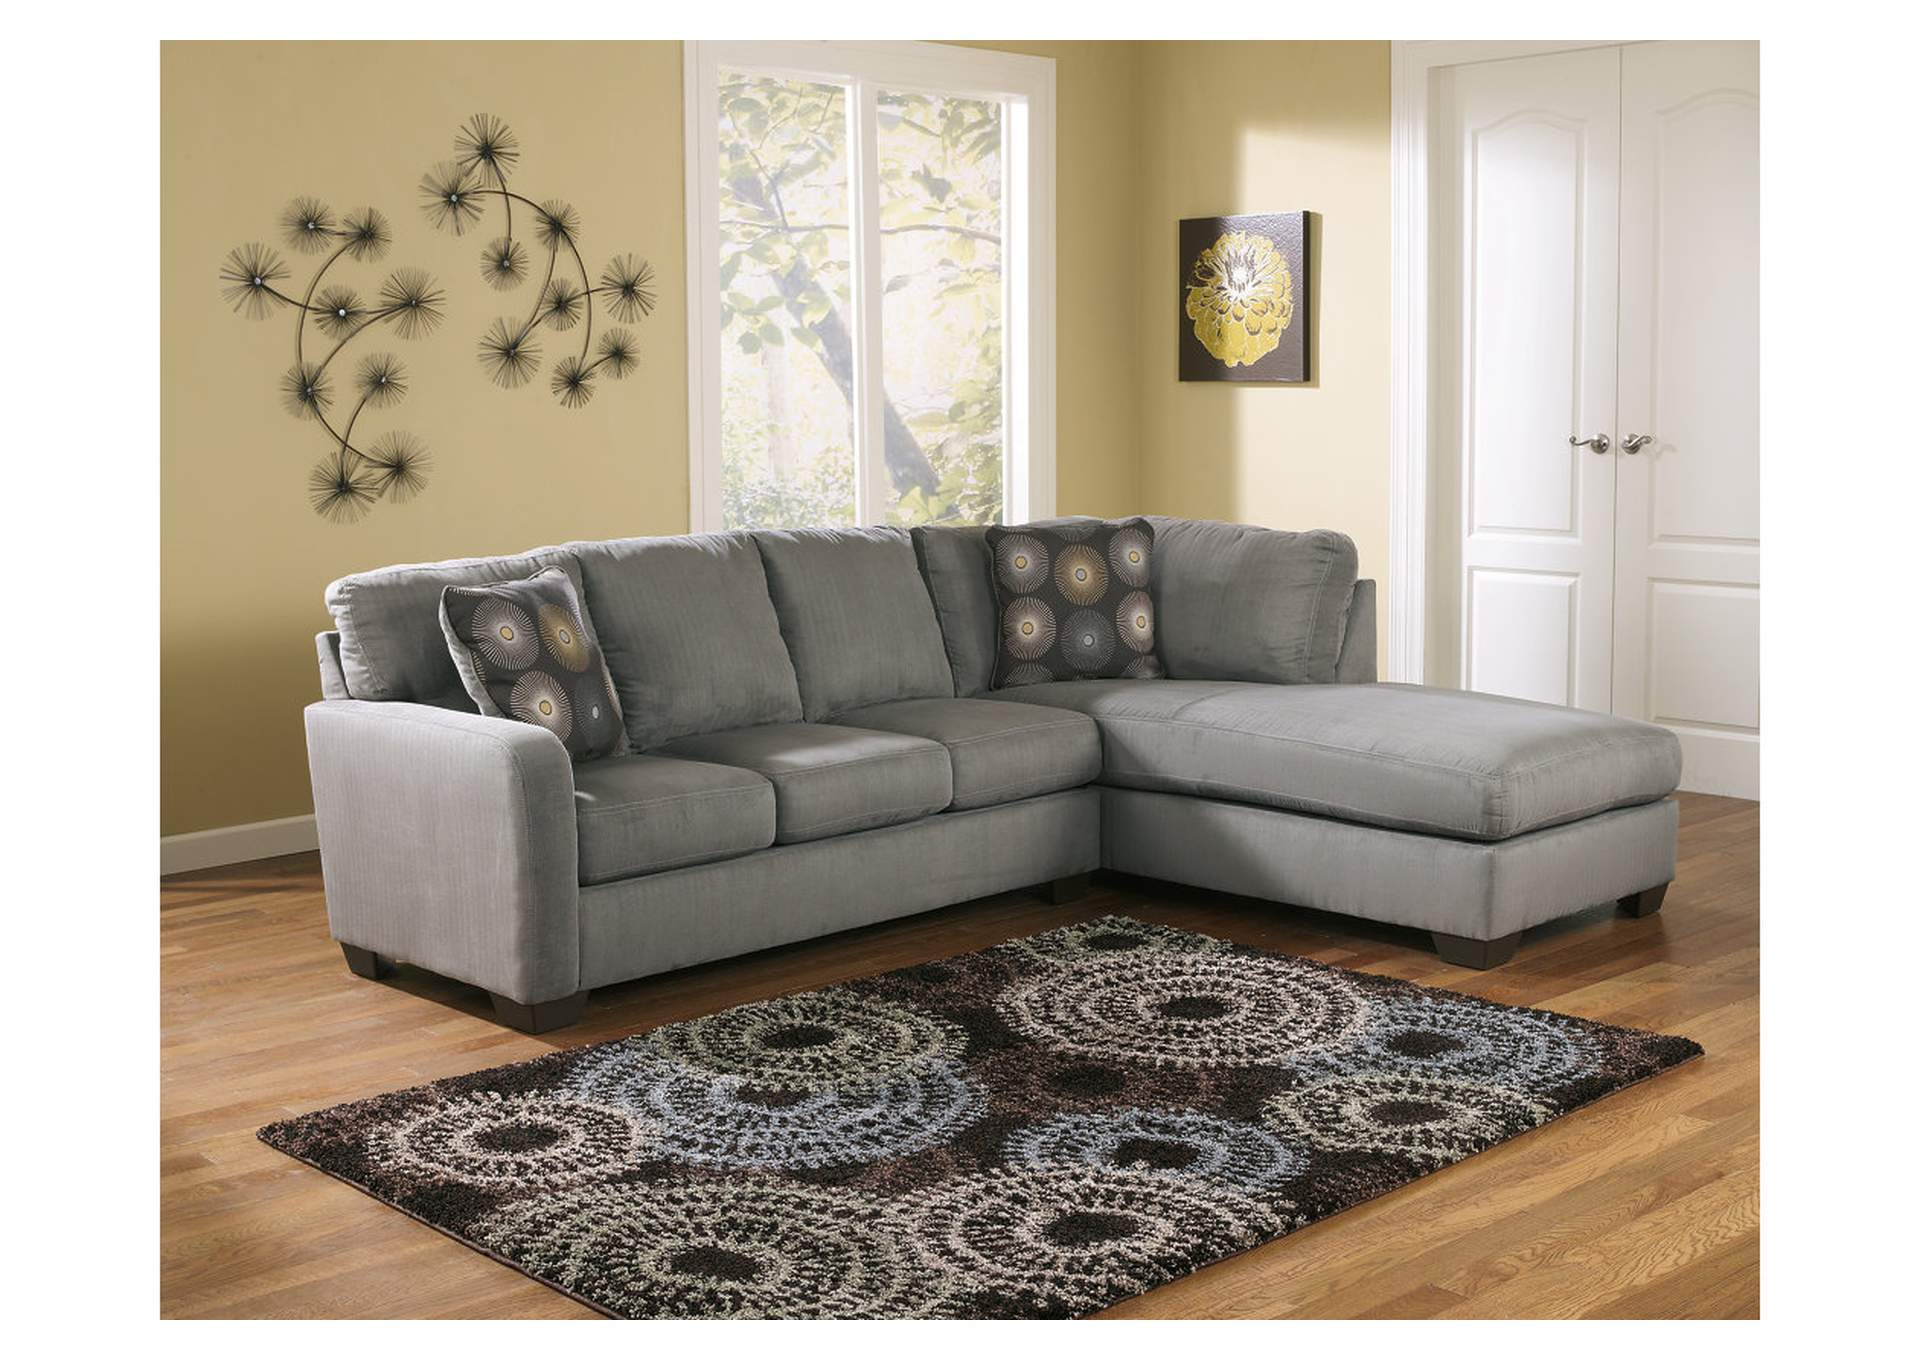 Austin 39 S Couch Potatoes Furniture Stores Austin Texas Zella Charcoal Right Facing Chaise